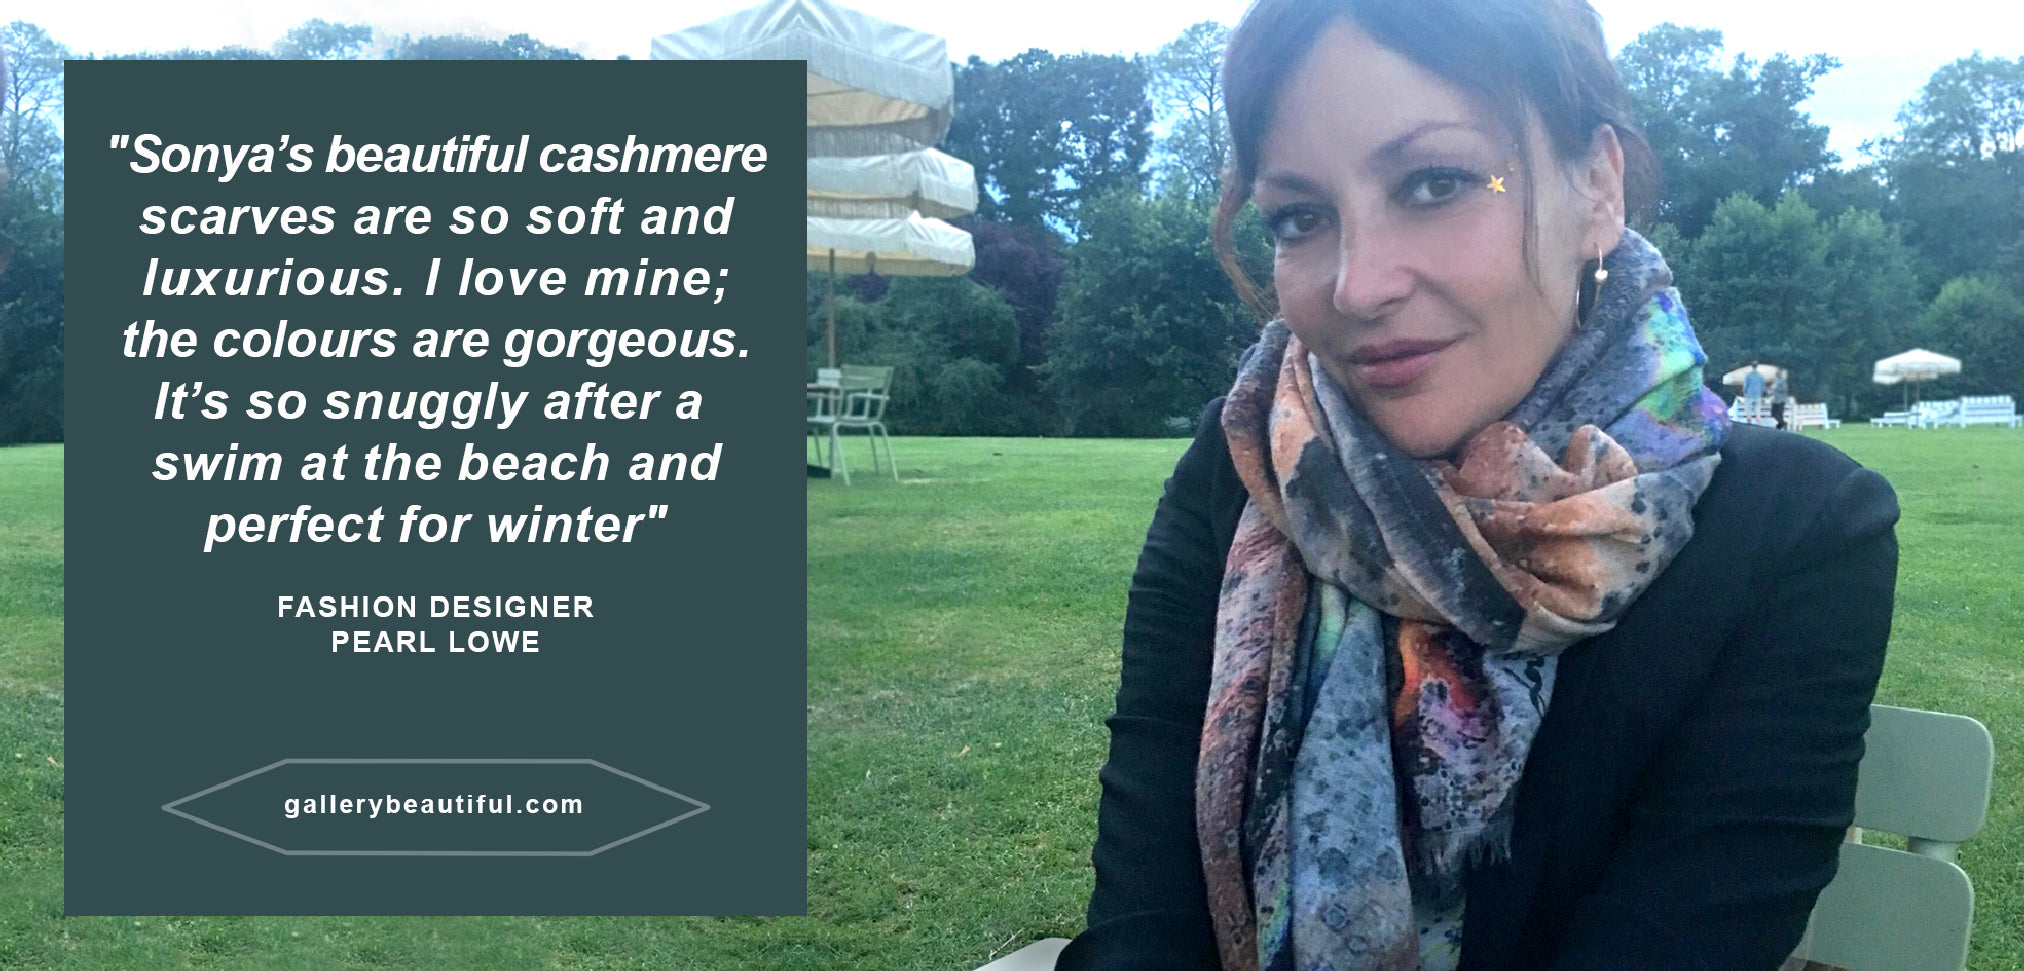 "SONYA ROTHWELL x GALLERY BEAUTIFUL TESTIMONIAL –  FASHION DESIGNER PEARL LOWE says; ""Sonya's beautiful cashmere scarves are so soft and luxurious. I love mine, the colours are lovely. It's so snuggly after a swim at the beach and perfect for winter"" luxury, homeware, interior design, home decor"